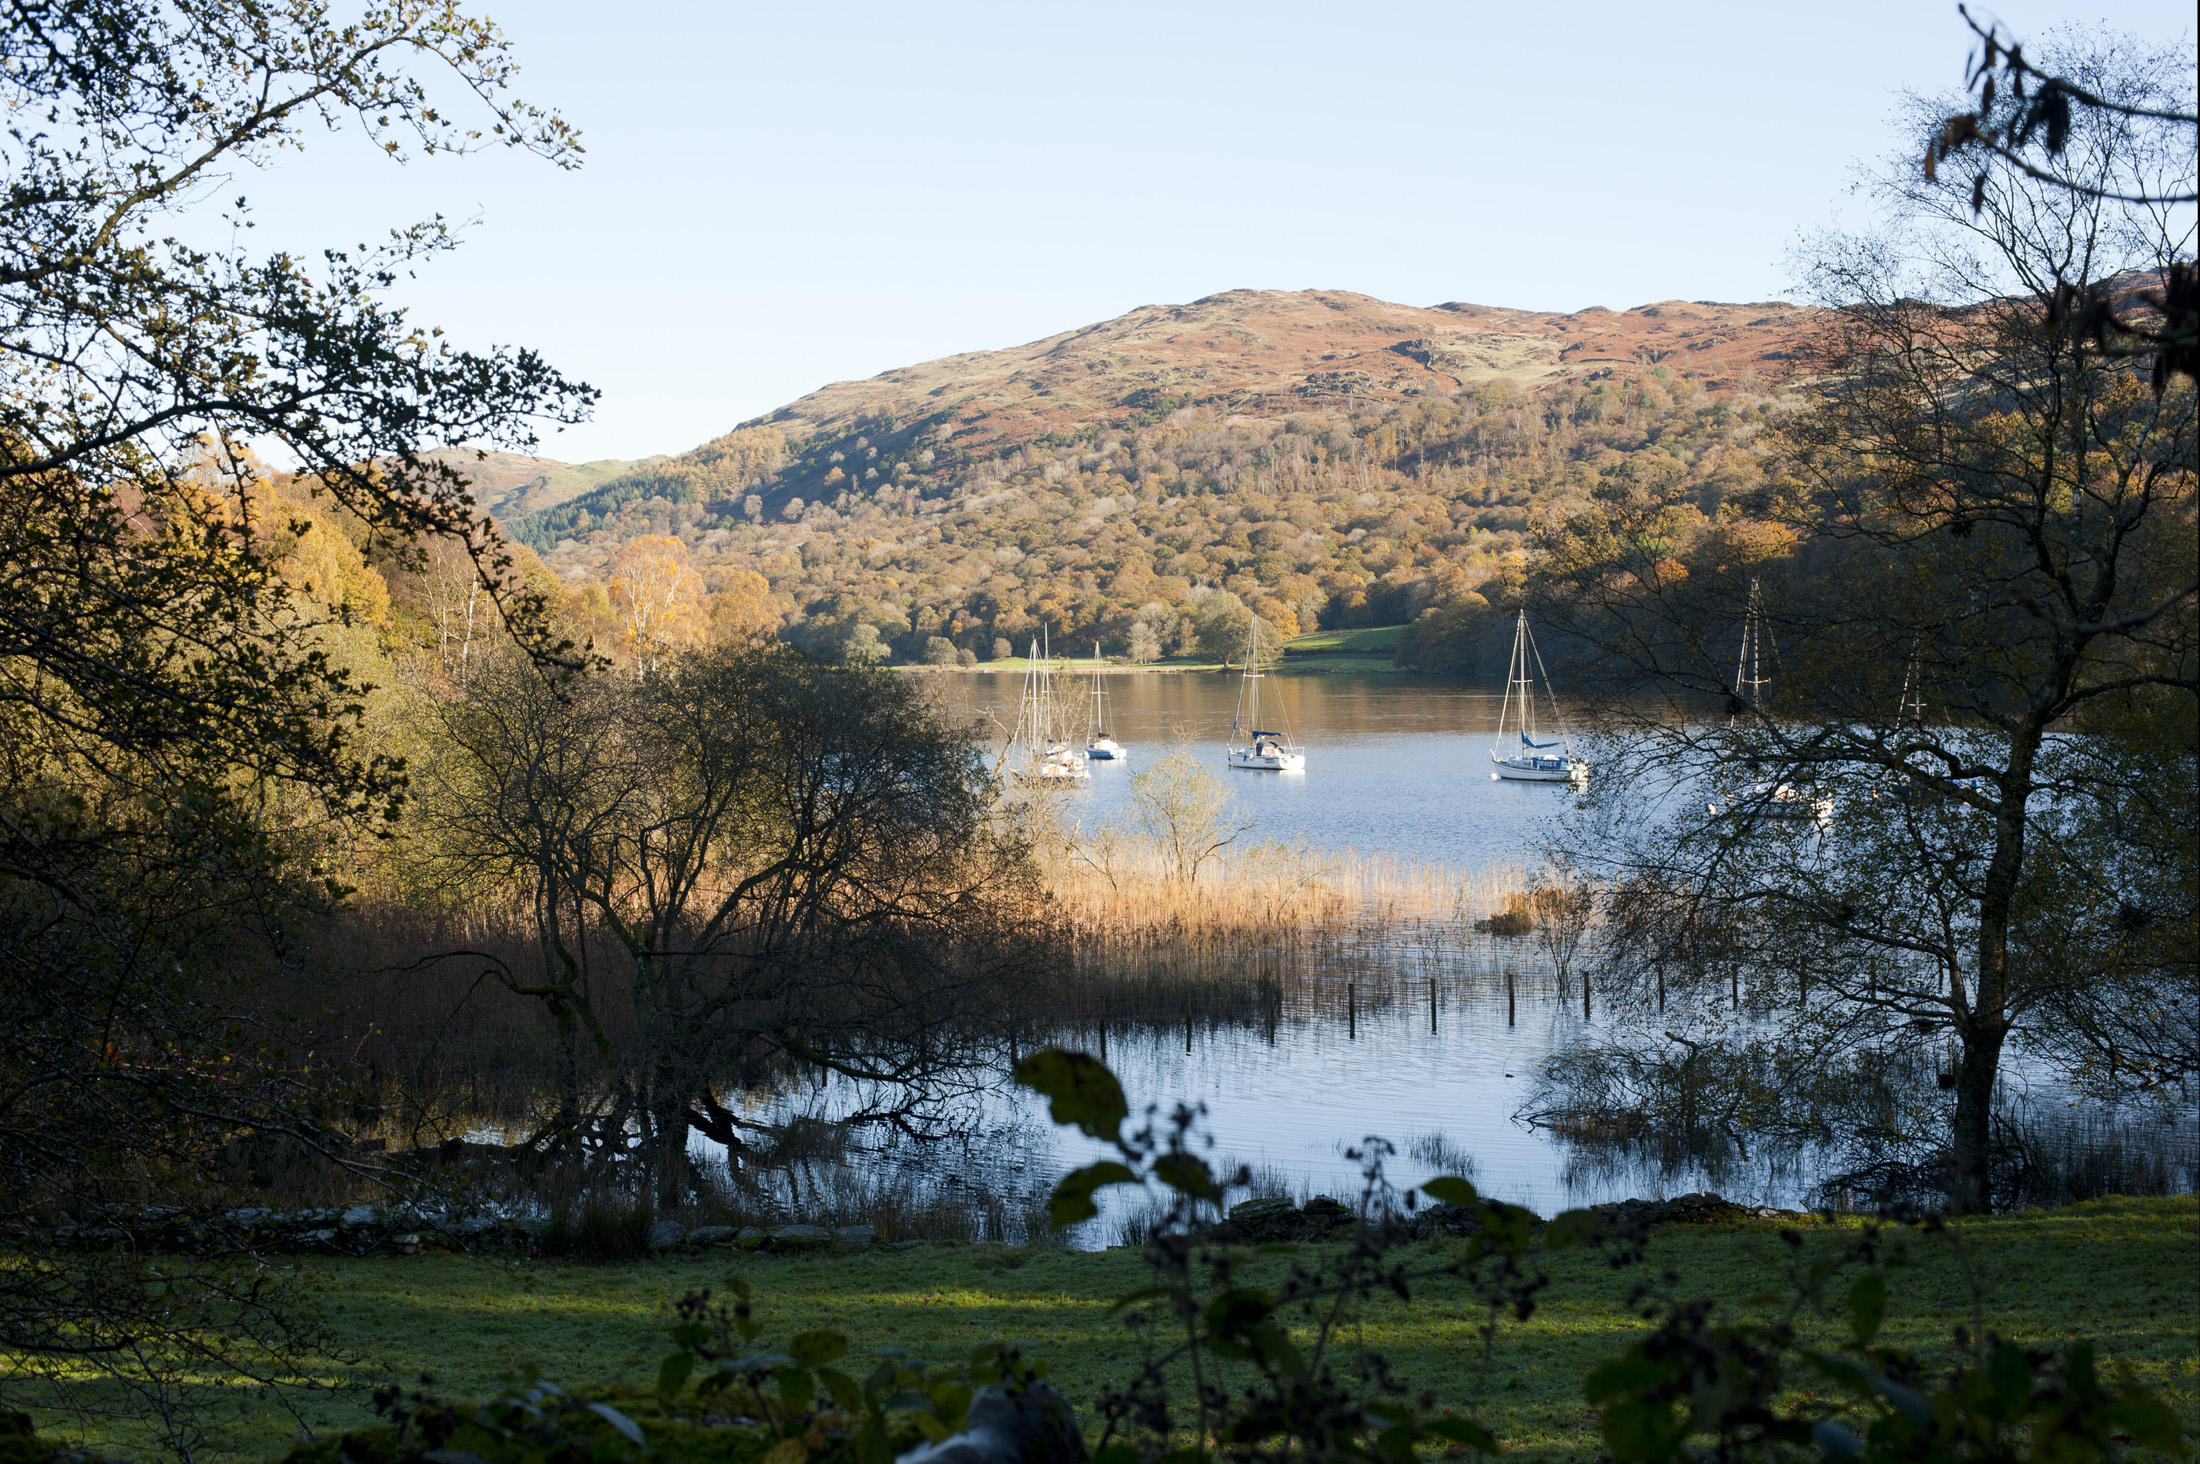 Scenic view through foliage of yachts moored in Coniston Water in Cumbria, the third largest lake in the Lake District